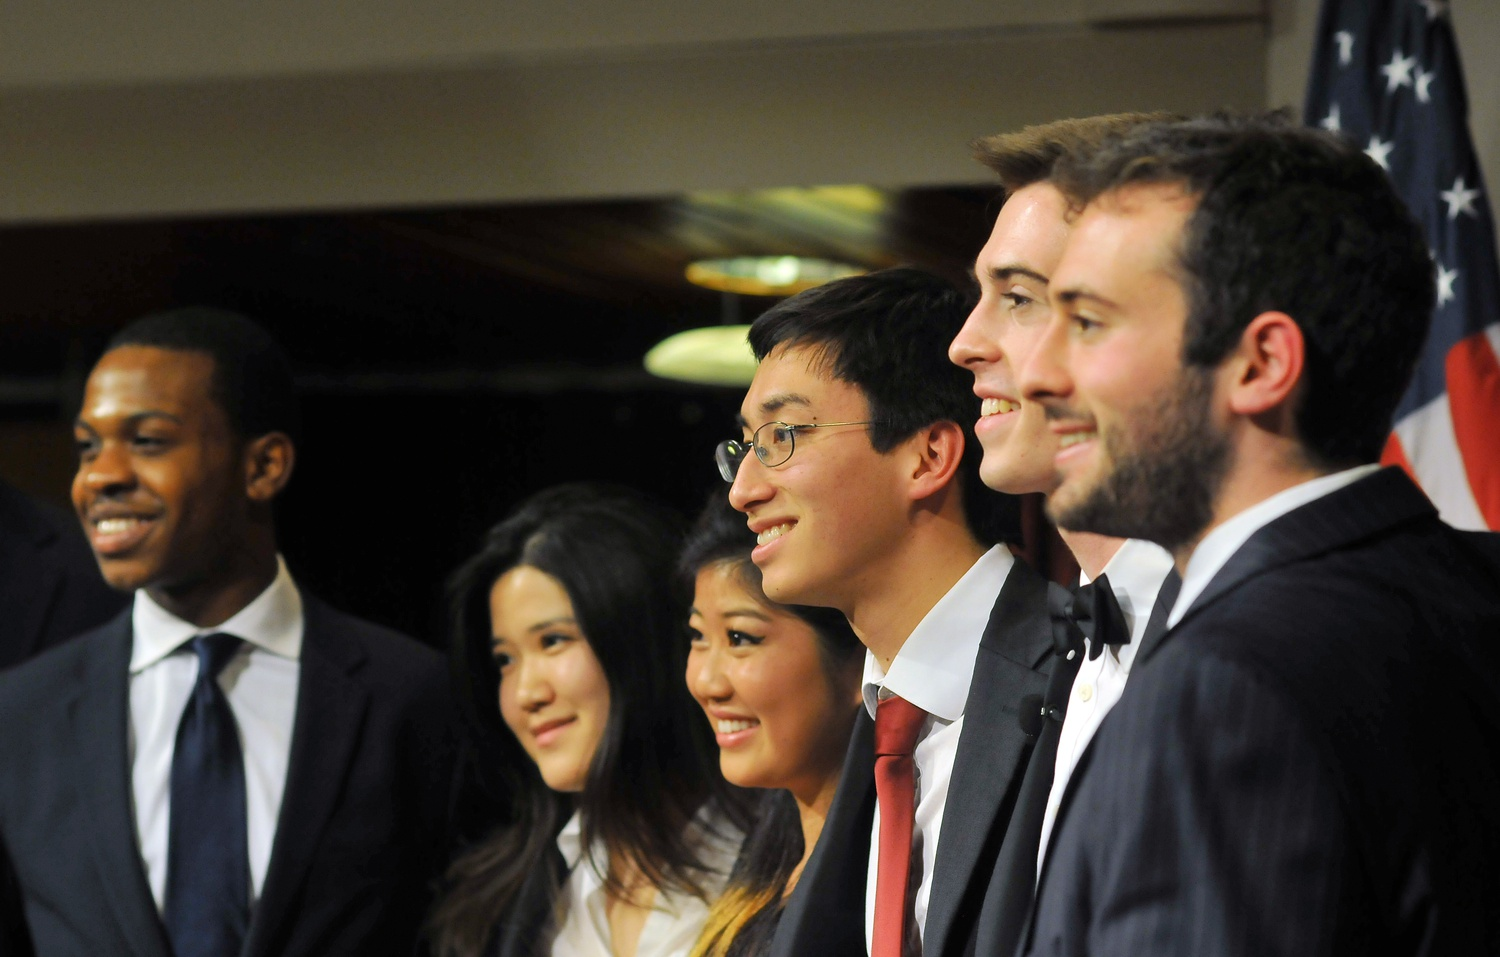 The three UC Presidential tickets, from left to right: Chika-Dike O. Nwokike '15 and Una Kim '15, C.C. Gong '15 and Sietse K. Goffard '15, Sam B. Clark '15/Gus A. Mayopoulos '15. The Presidential debate, hosted by the Institute of Politics, took place on Monday evening in the JFK Jr. Forum.